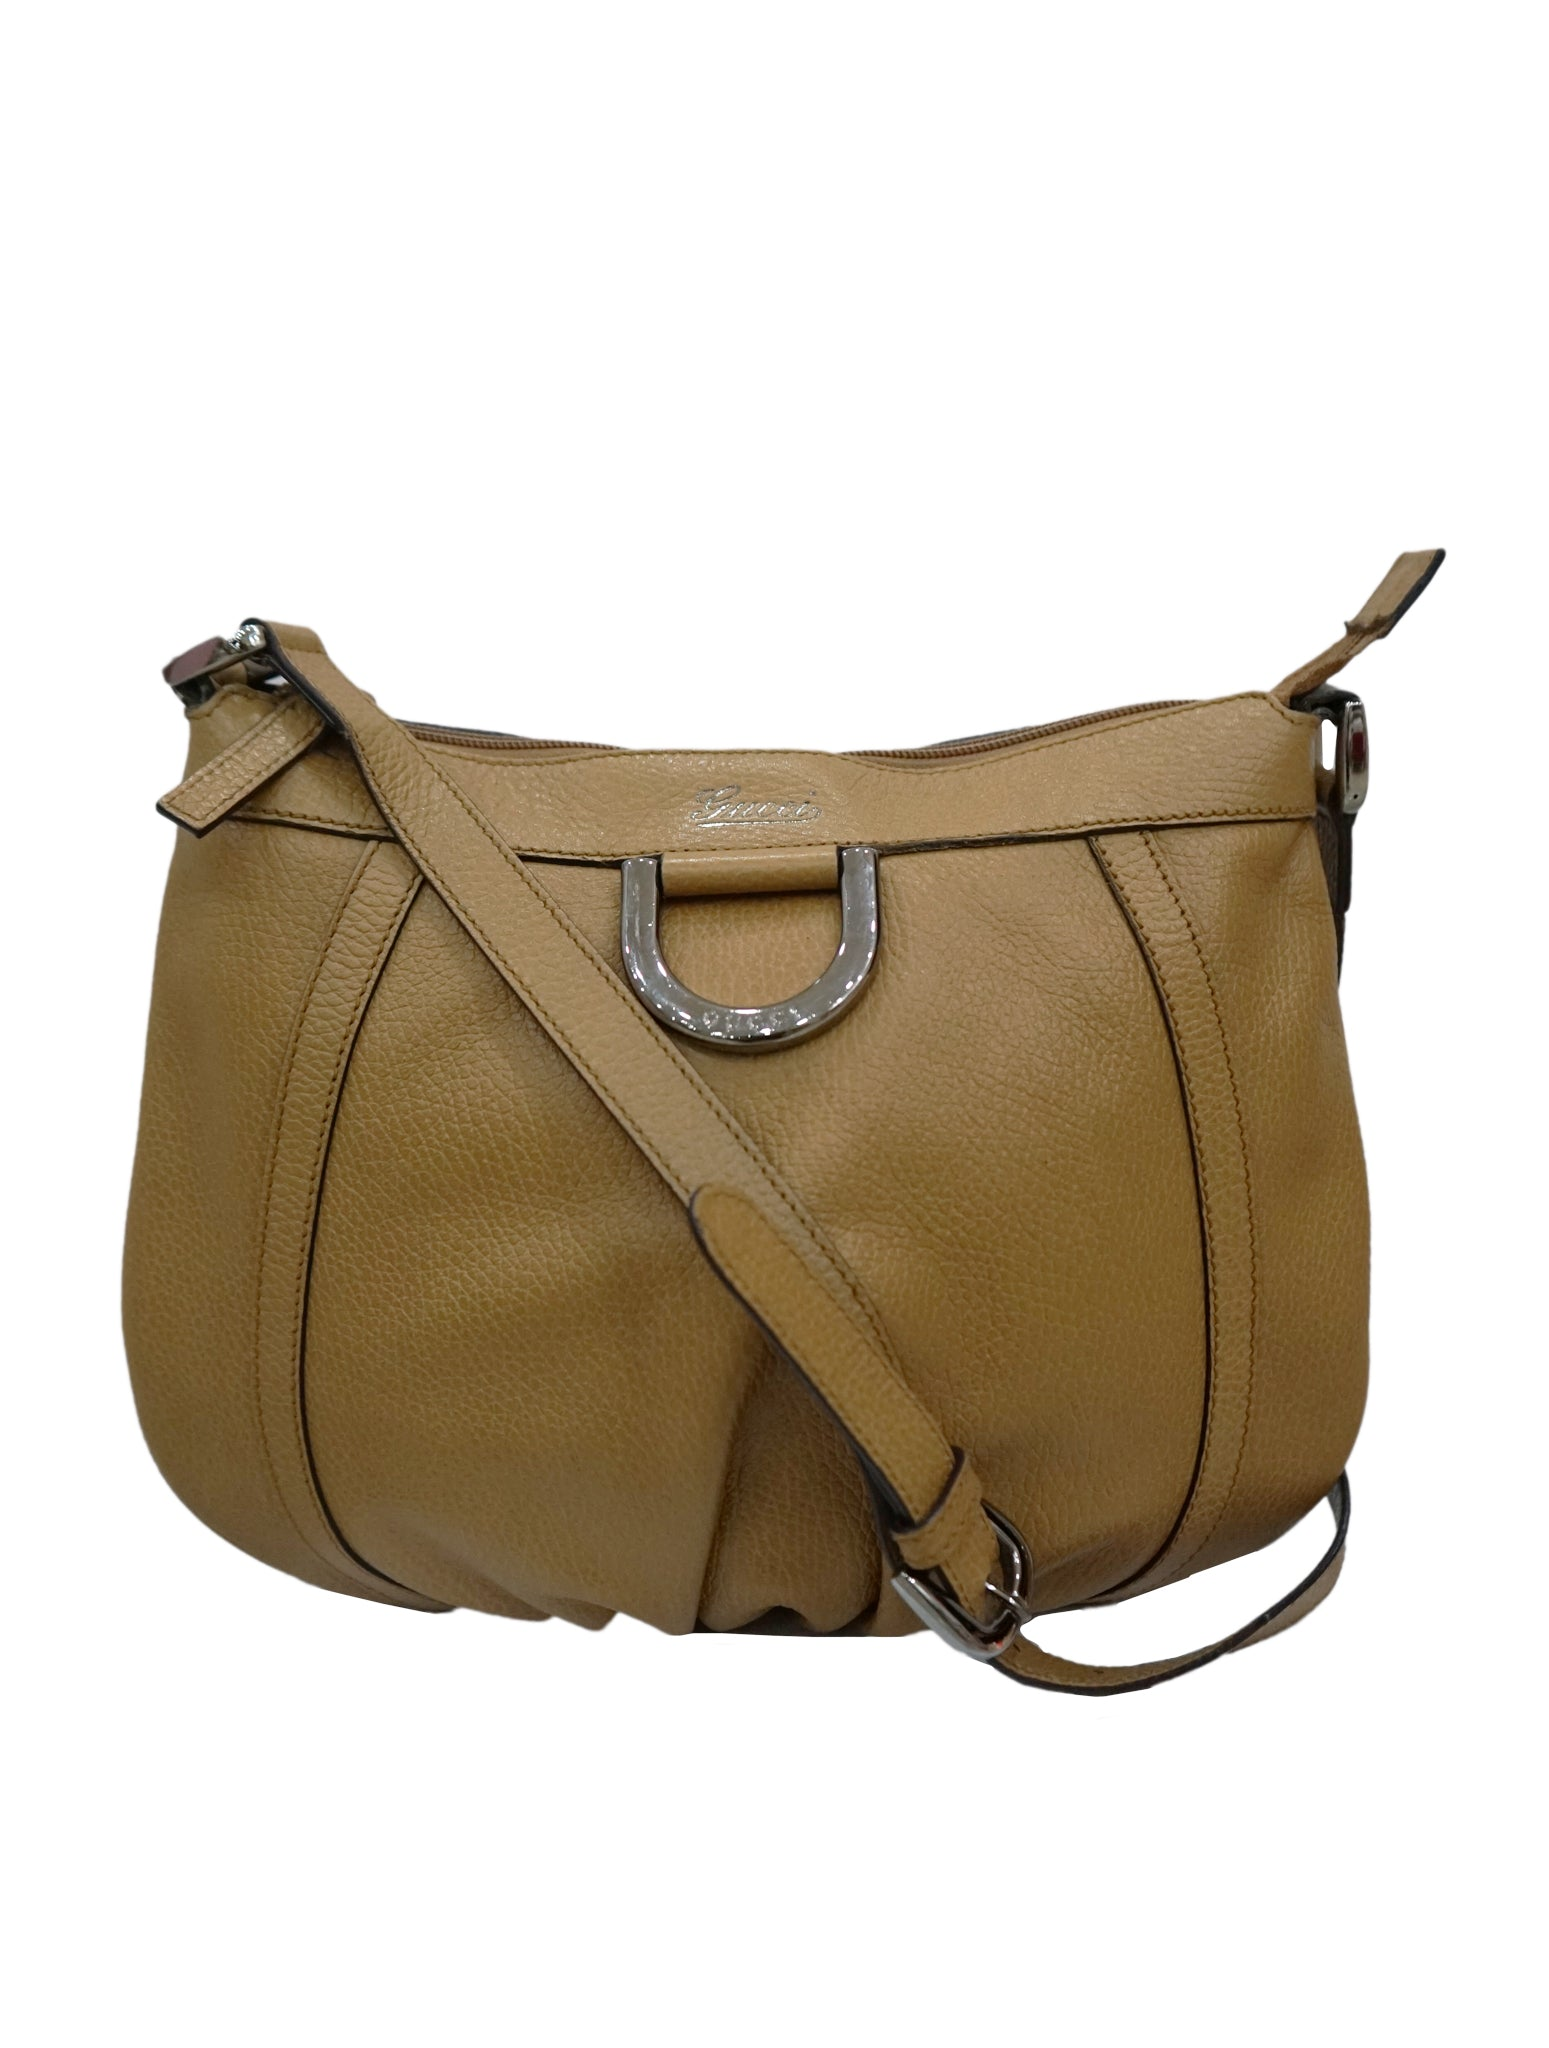 BROWN ABBEY VINTAGE HOBO BAG